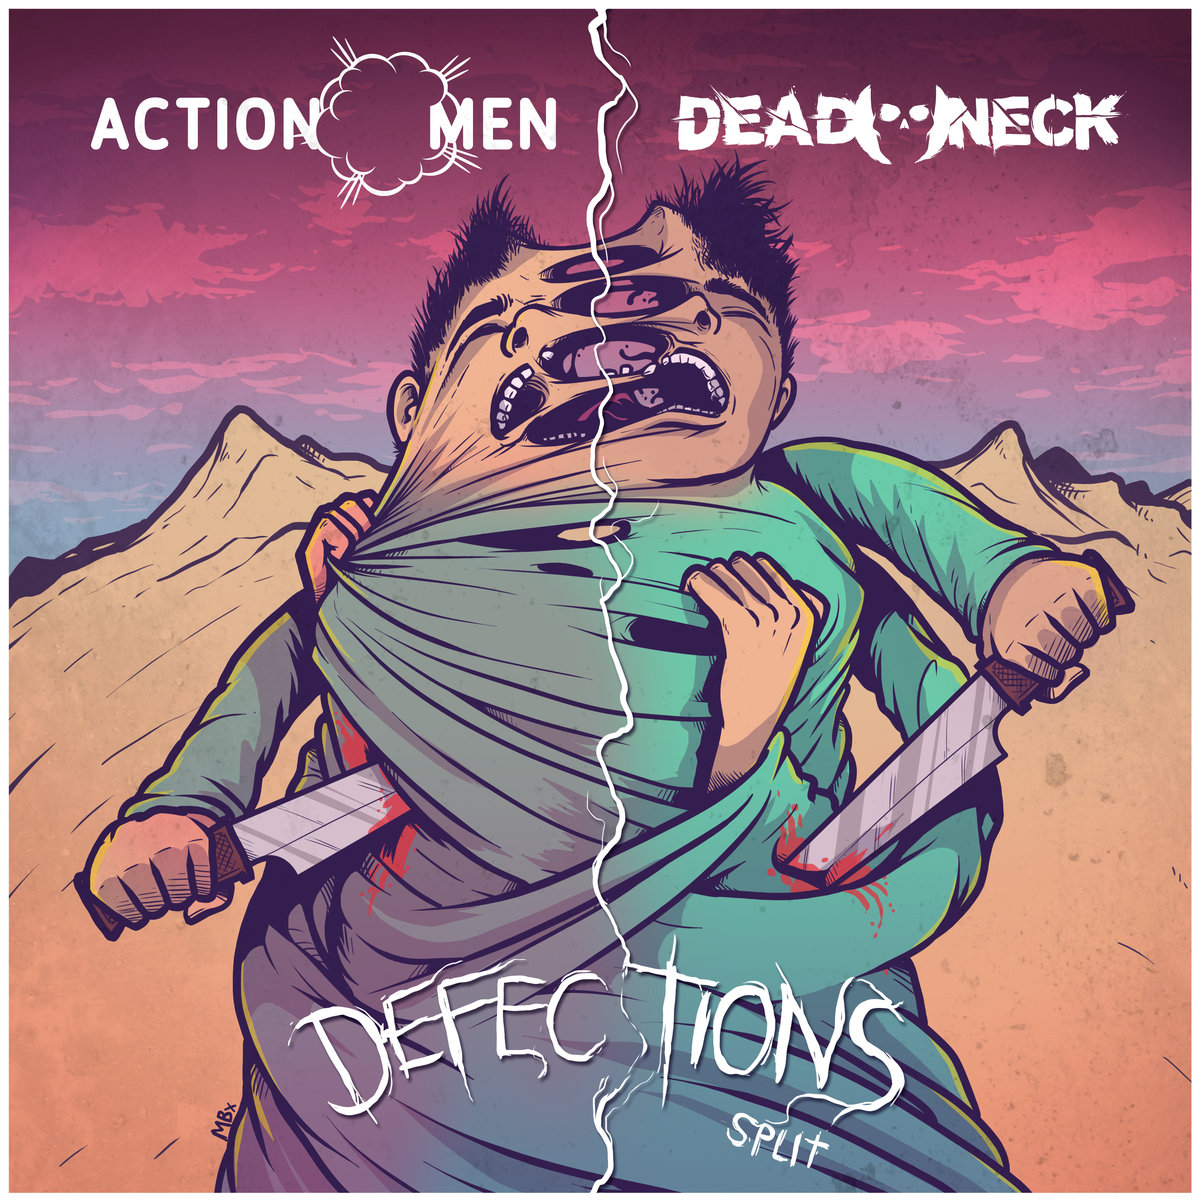 Album Review: Actionmen / Dead Neck – Defections (Split)